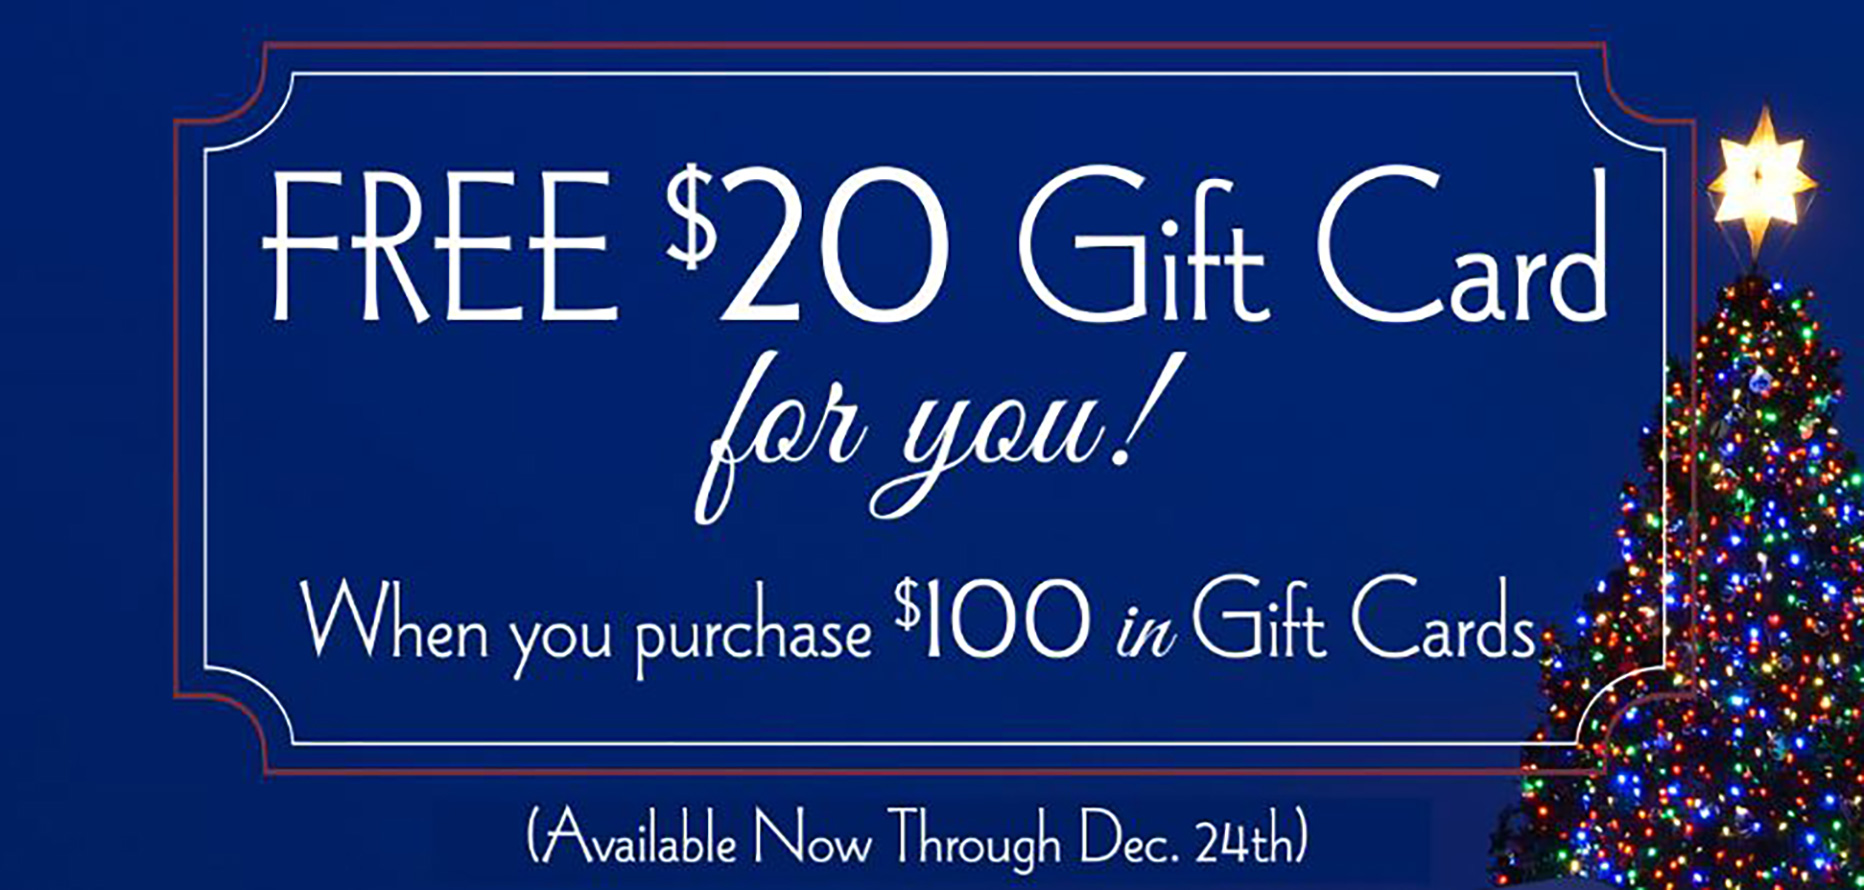 DC Prime Holiday Gift Card Promotion is back